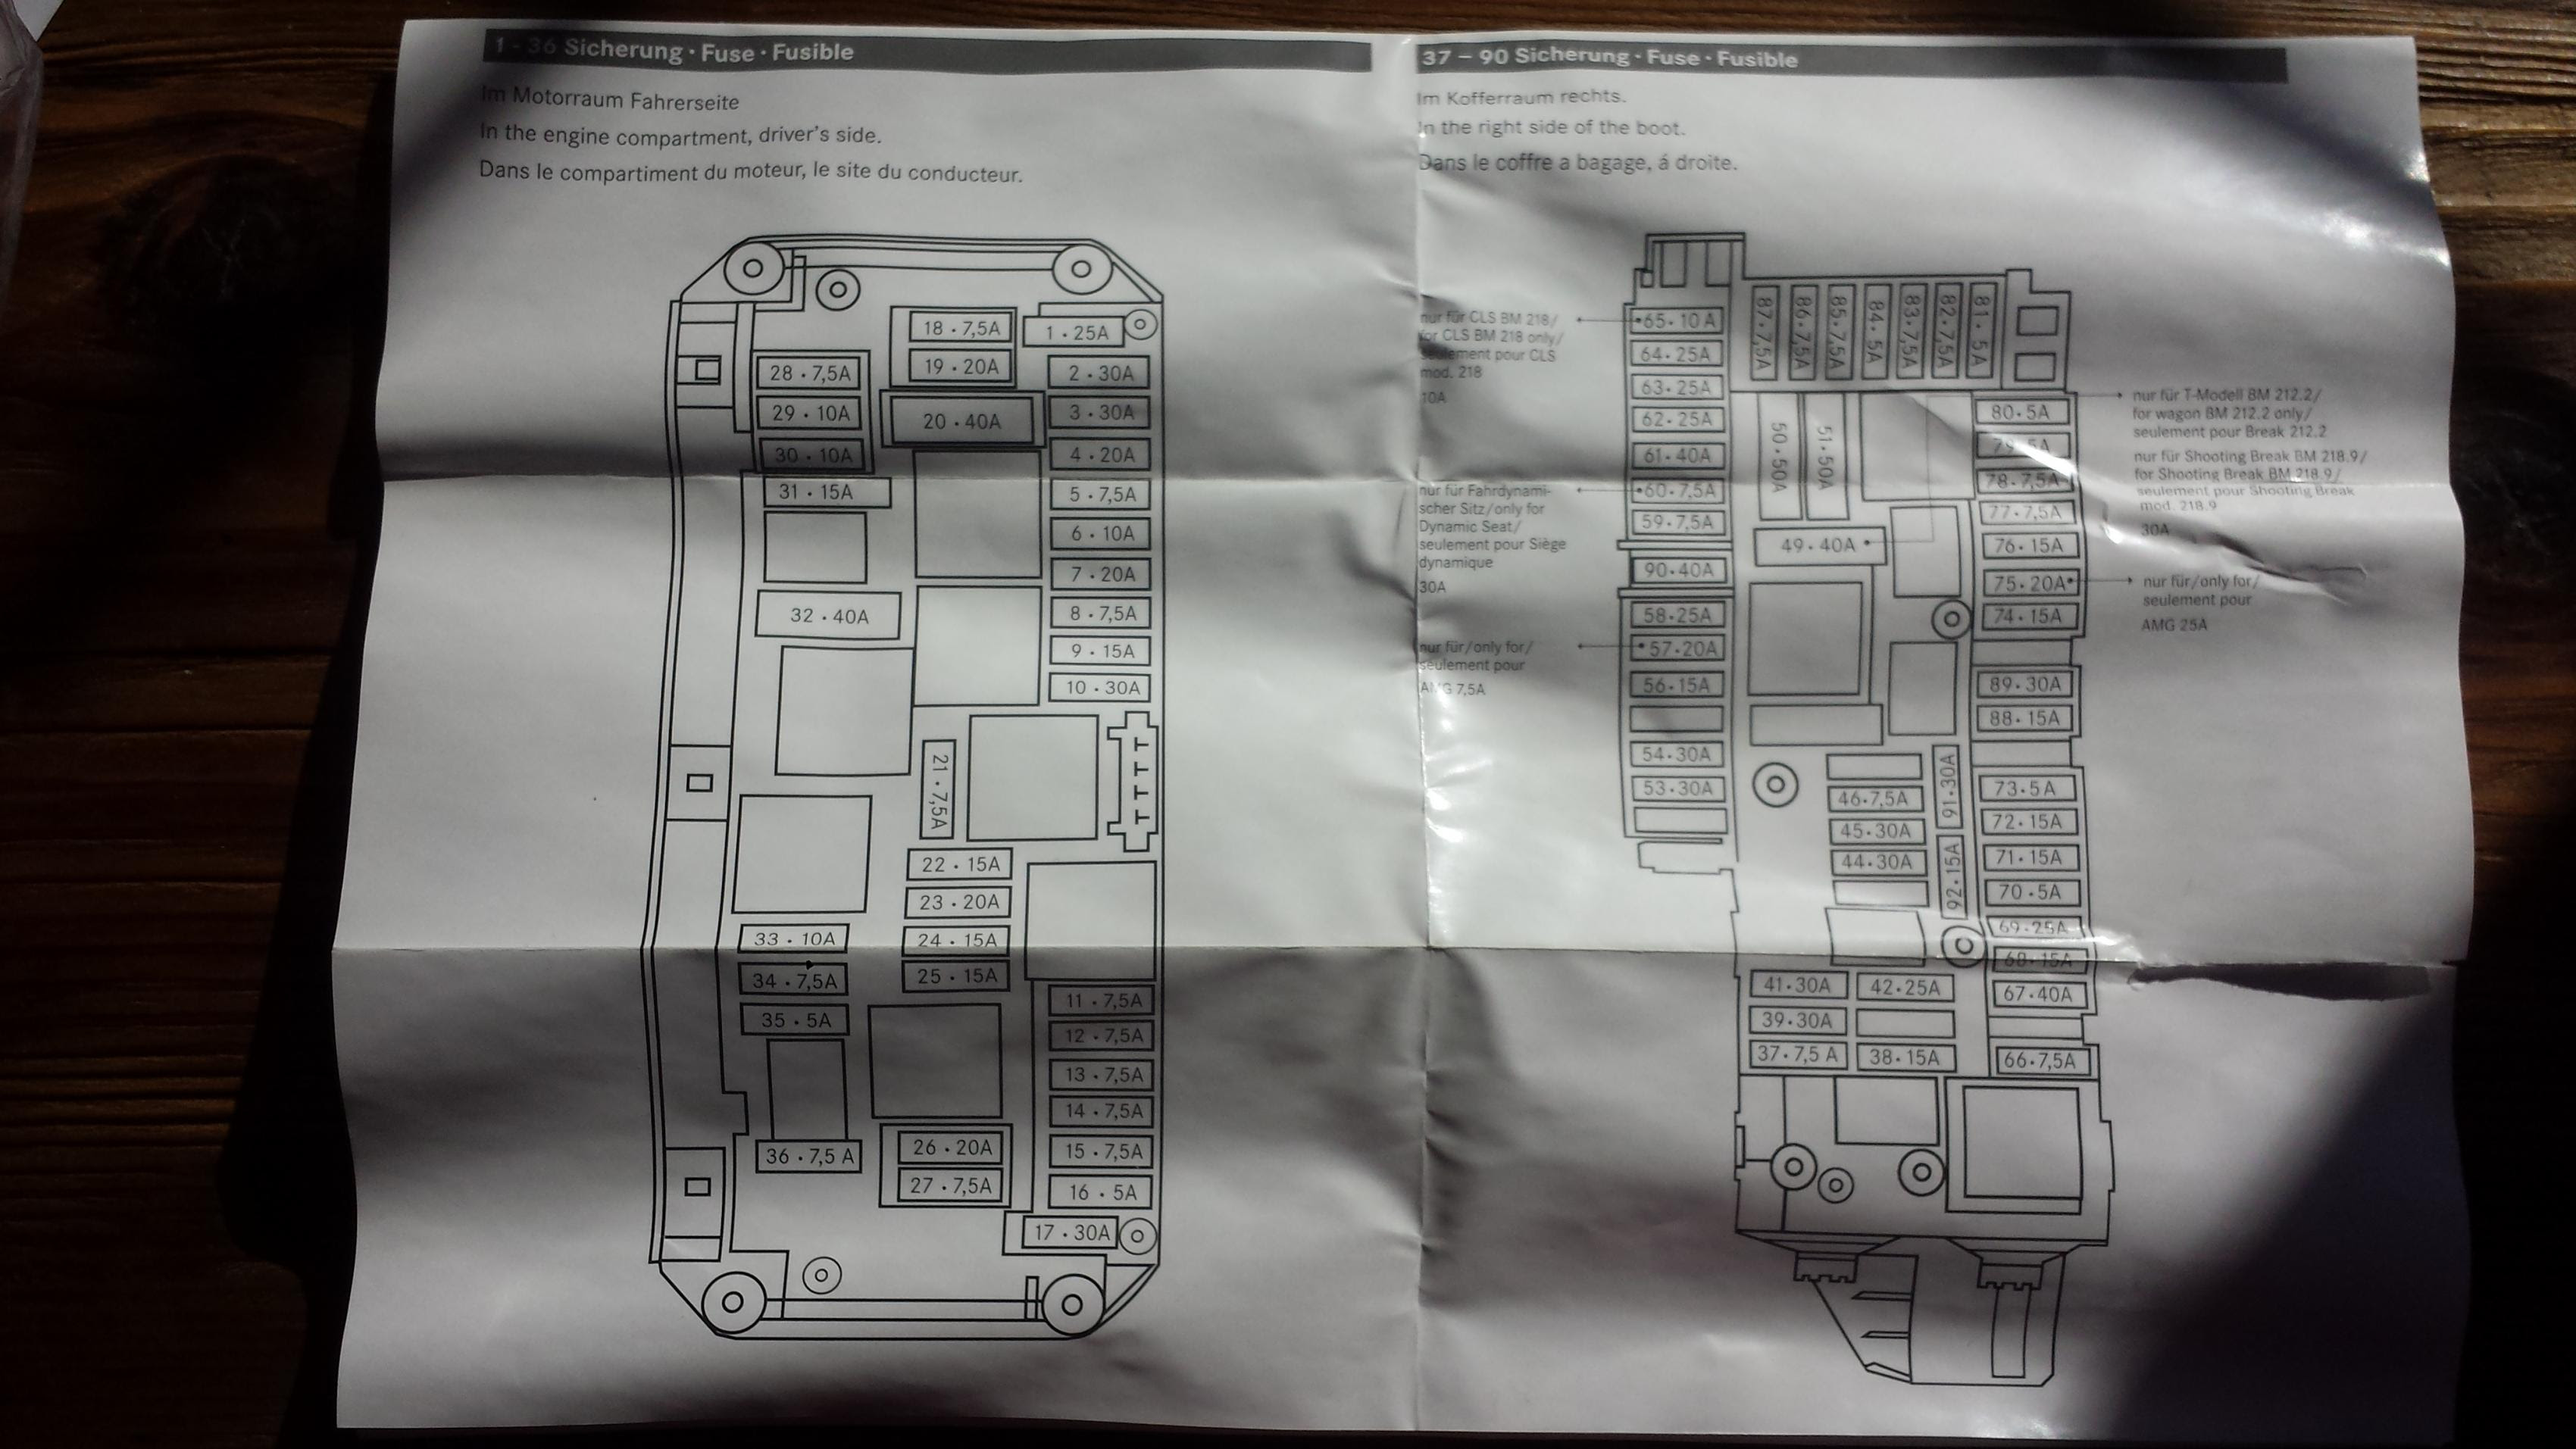 Mercedes E350 Fuse Box Diagram Wiring Diagram Public B Public B Bowlingronta It